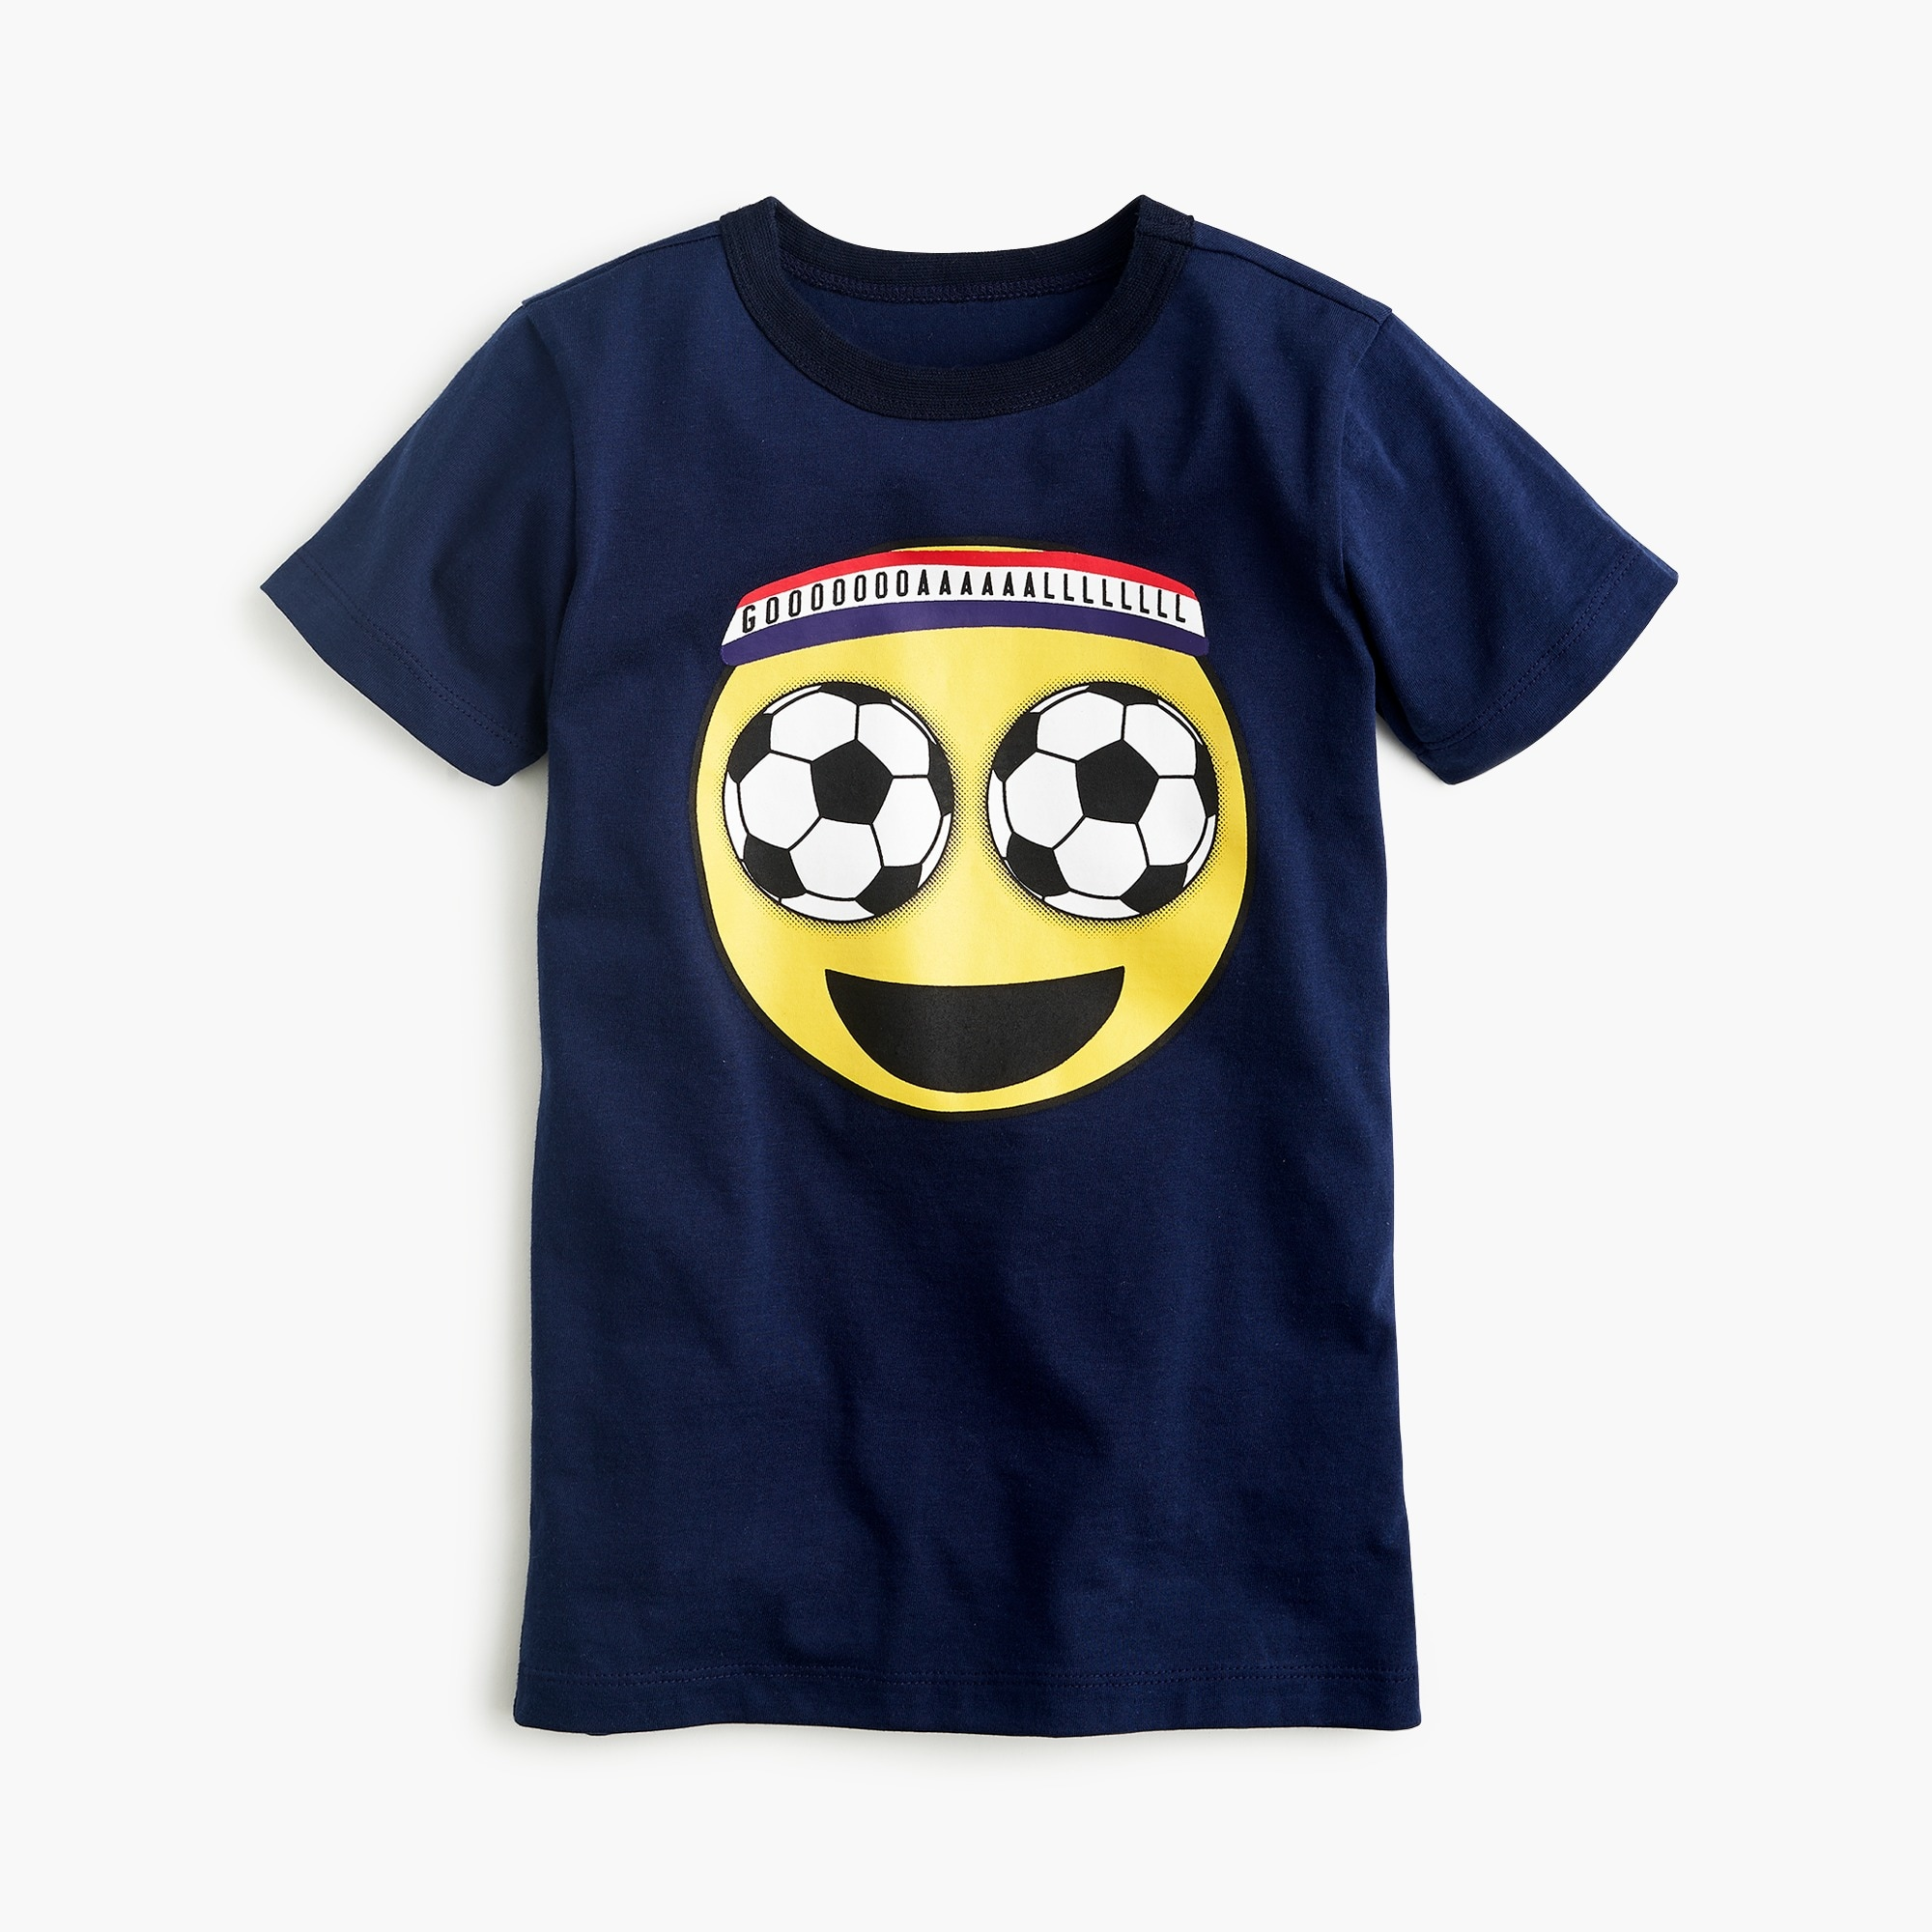 boys Boys' soccer-eyes emoji T-shirt